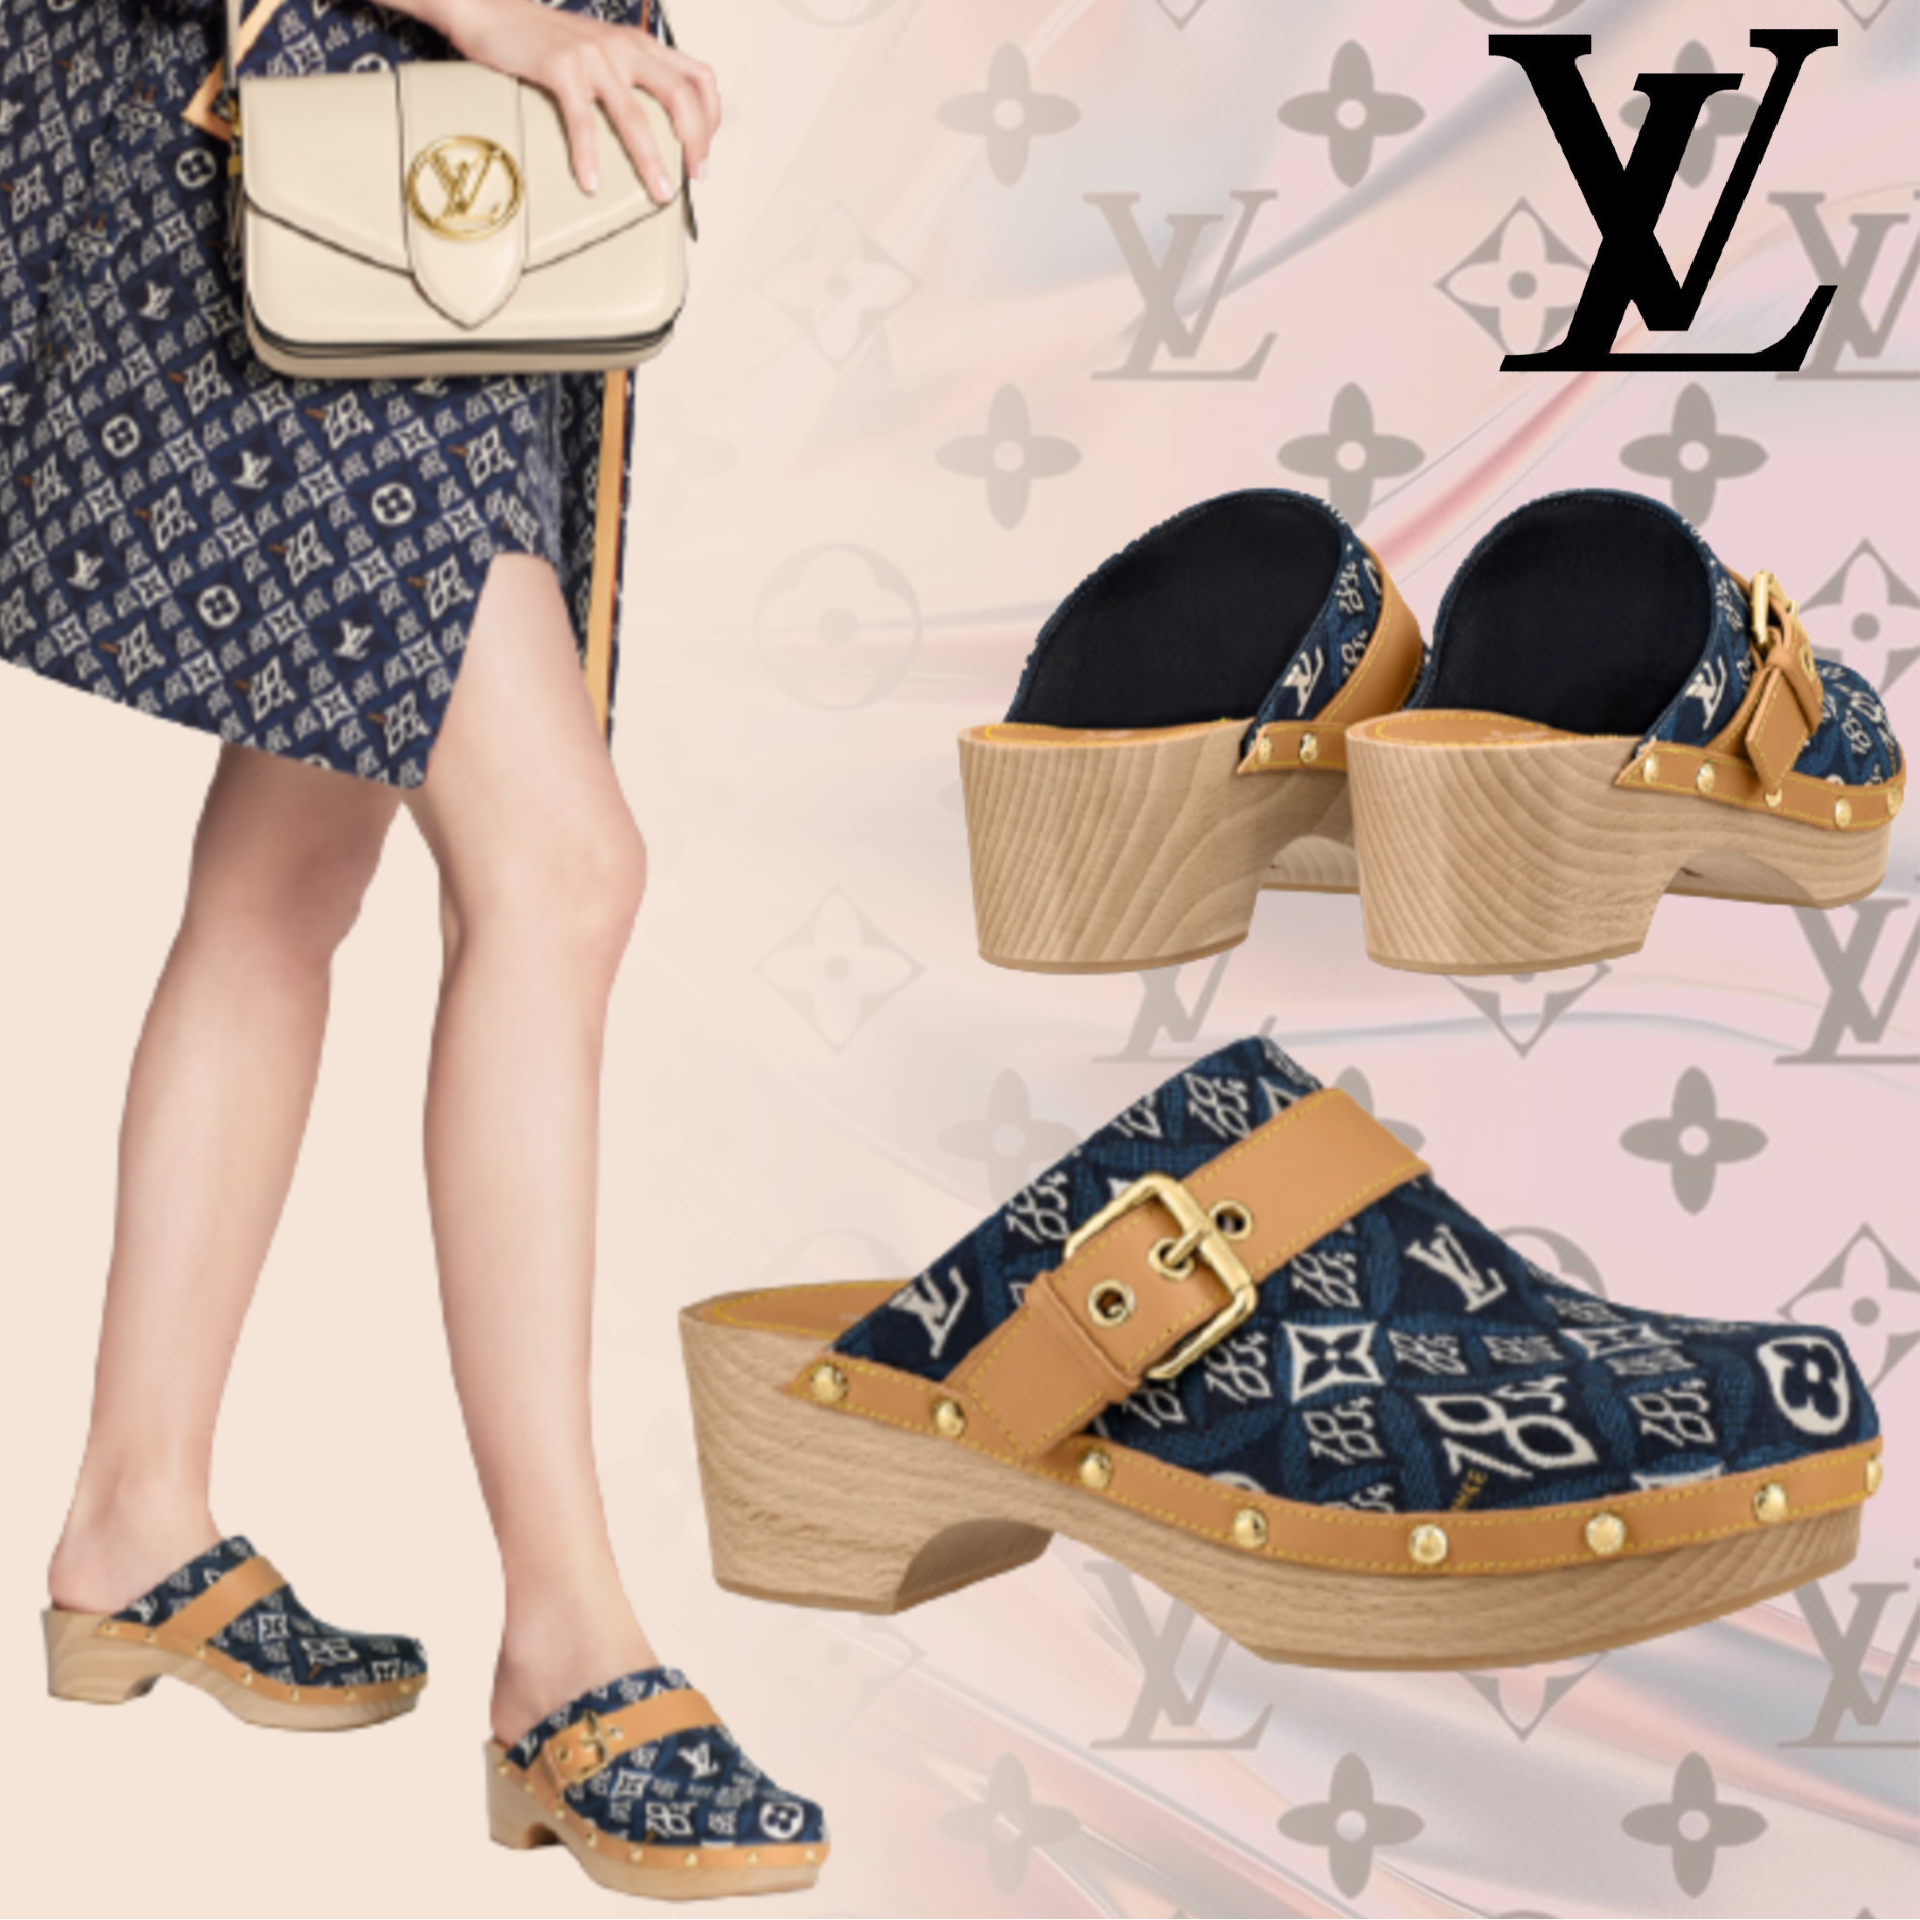 ◆SINCE 1854◆ LOUIS VUITTON コテージ サボ サンダル 青 (Louis Vuitton/サンダル・ミュール) 1A8NUH